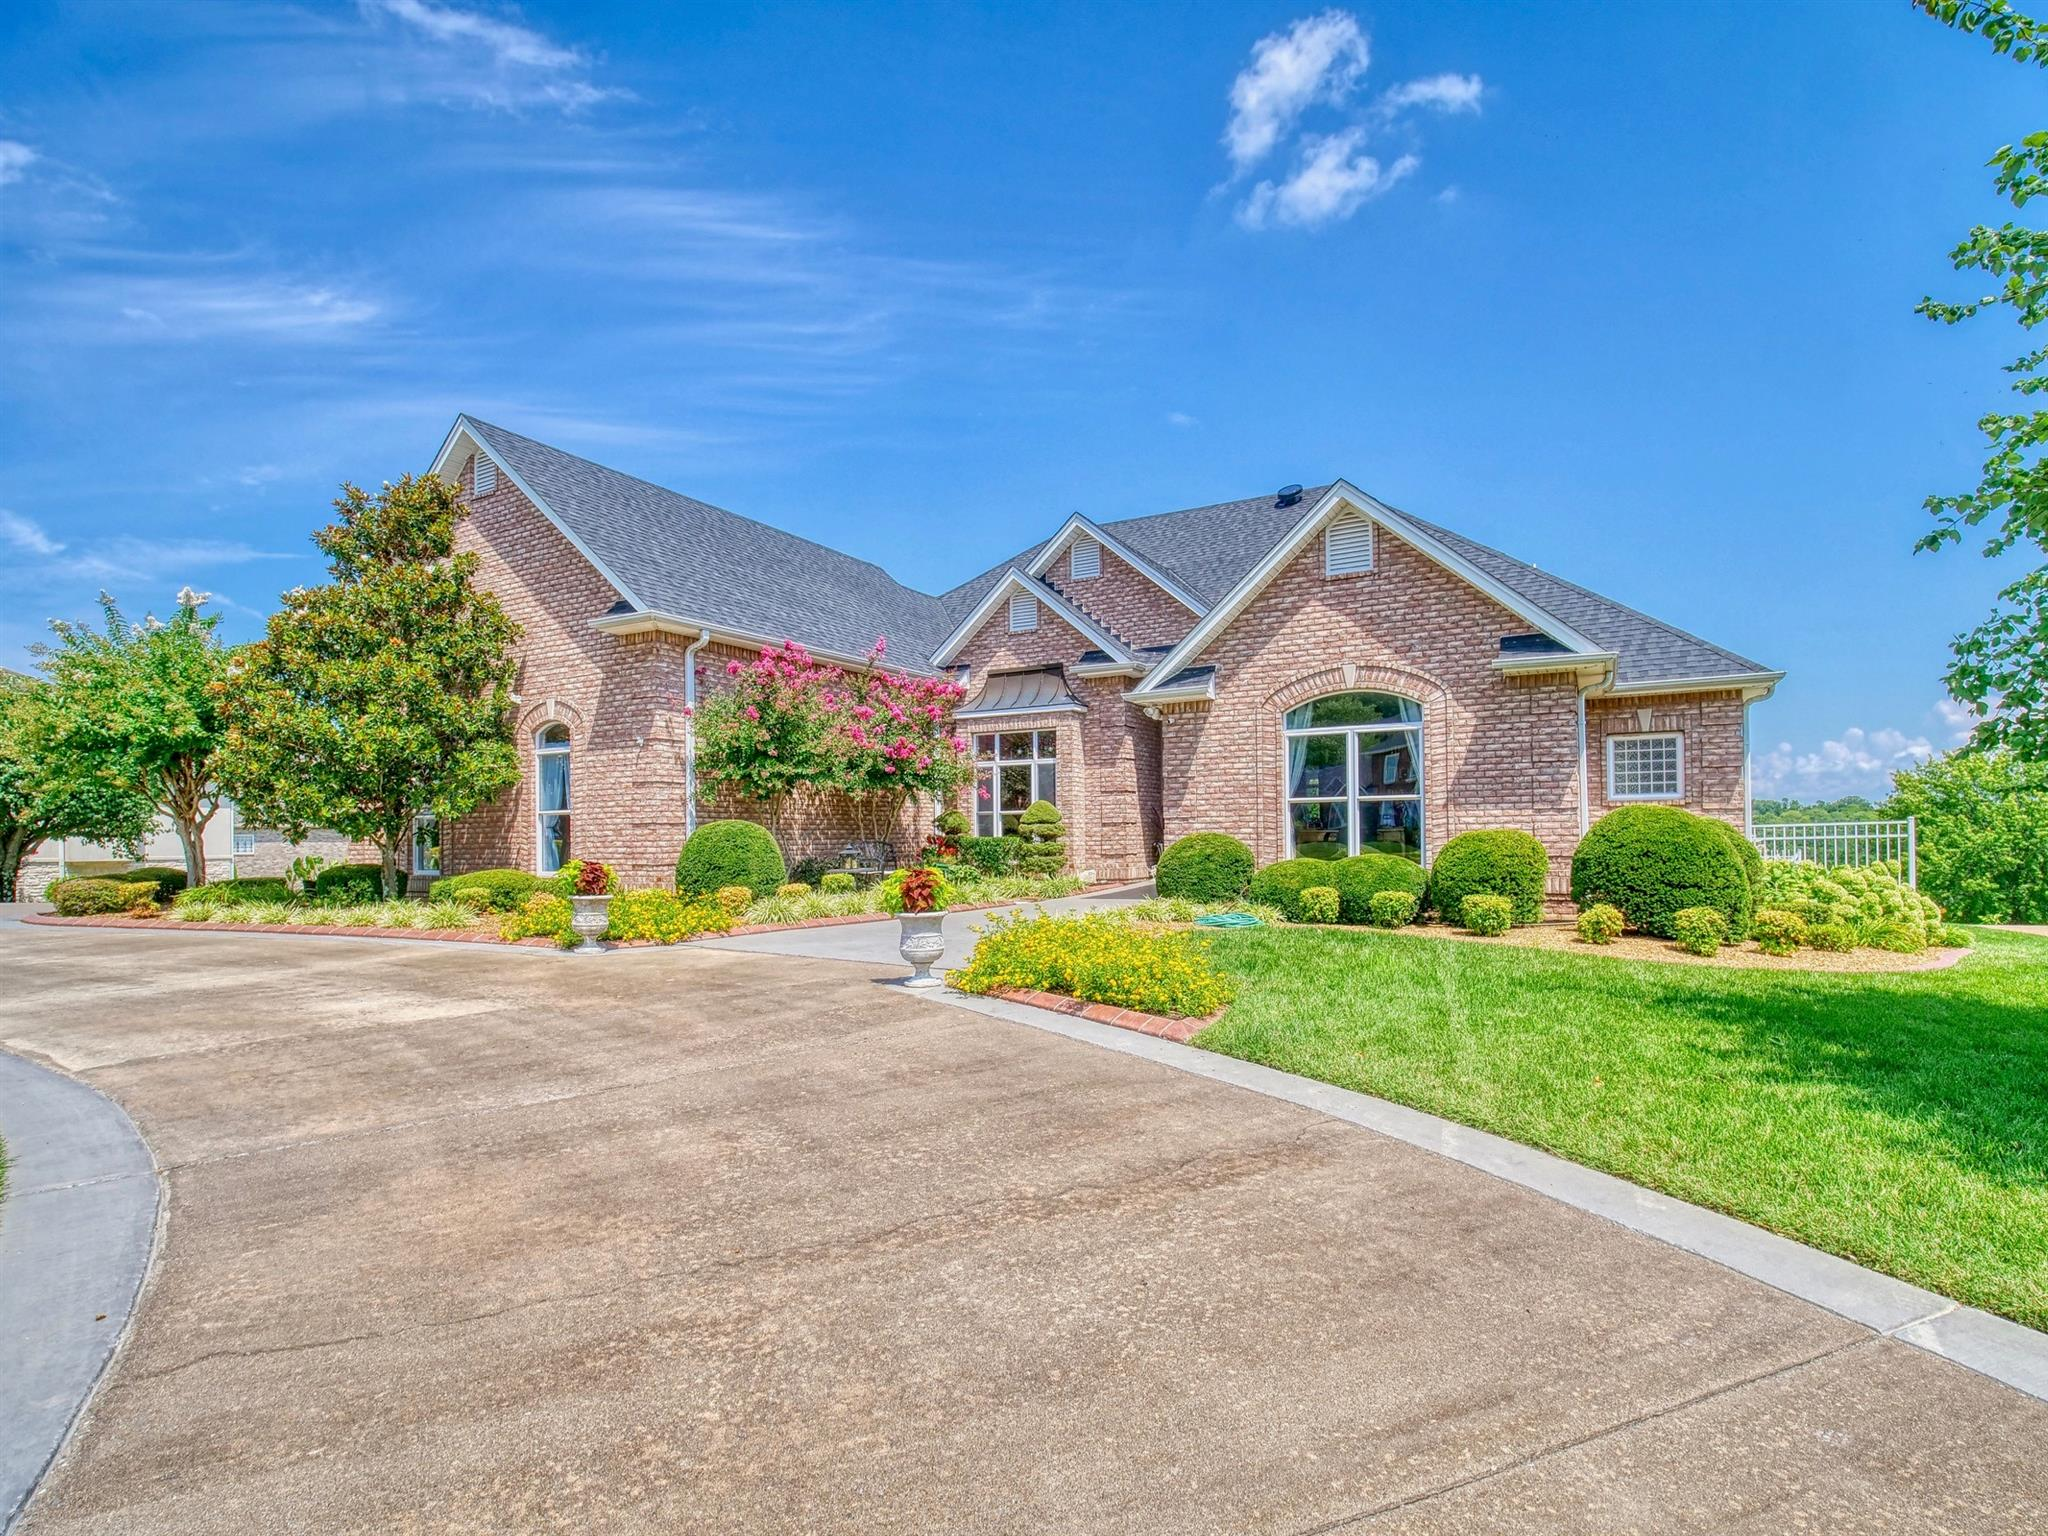 2207 Cartel Dr, Lebanon, TN 37087 - Lebanon, TN real estate listing